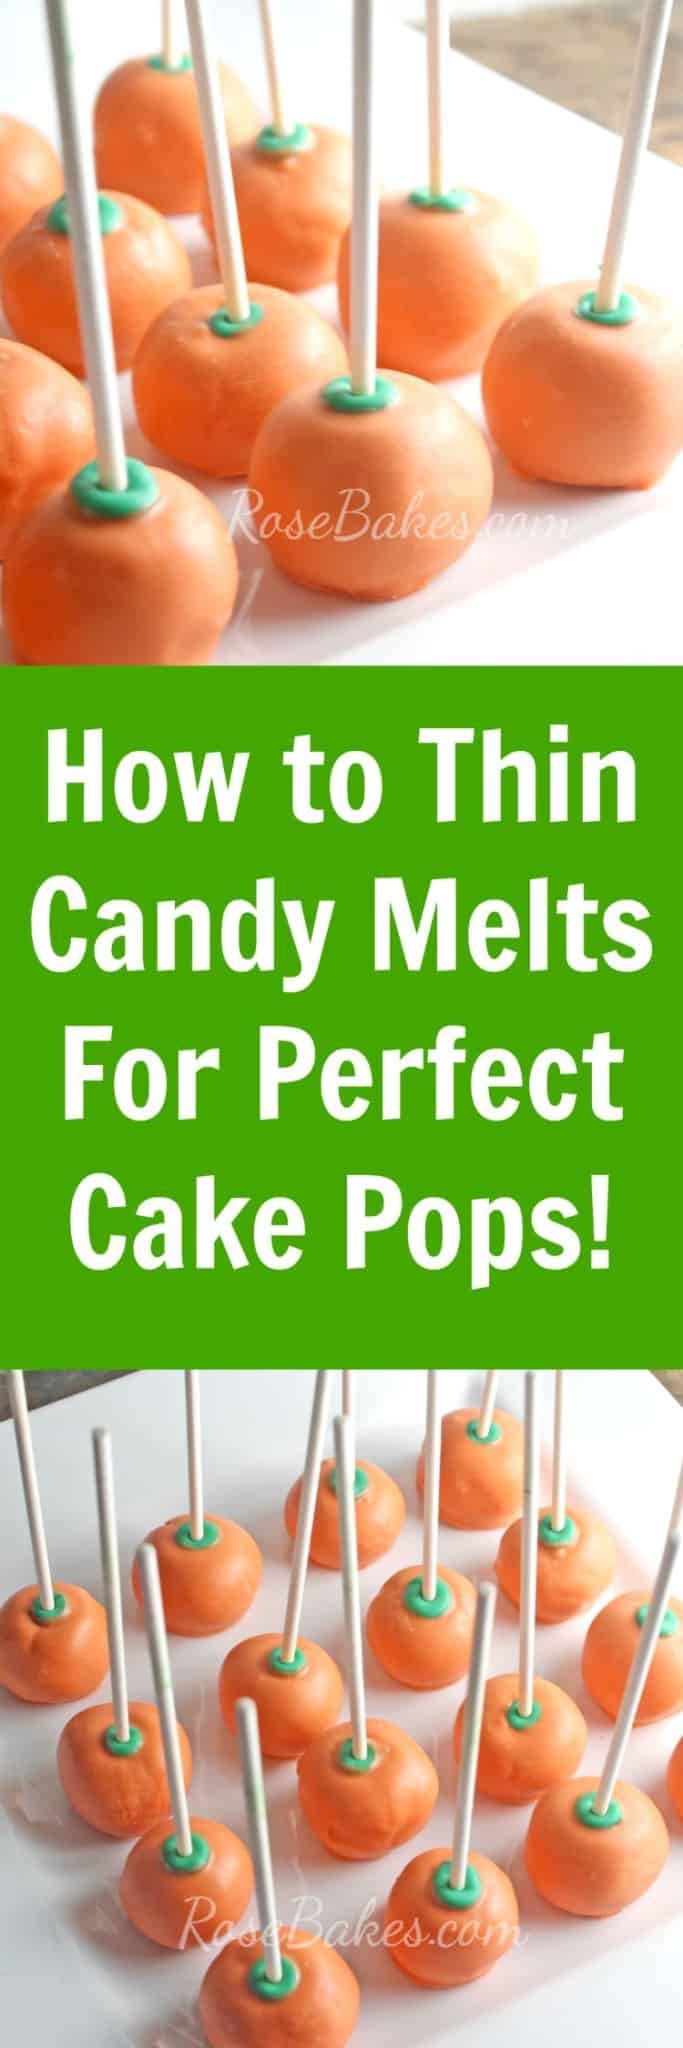 How To Thin Chocolate Melts For Cake Pops